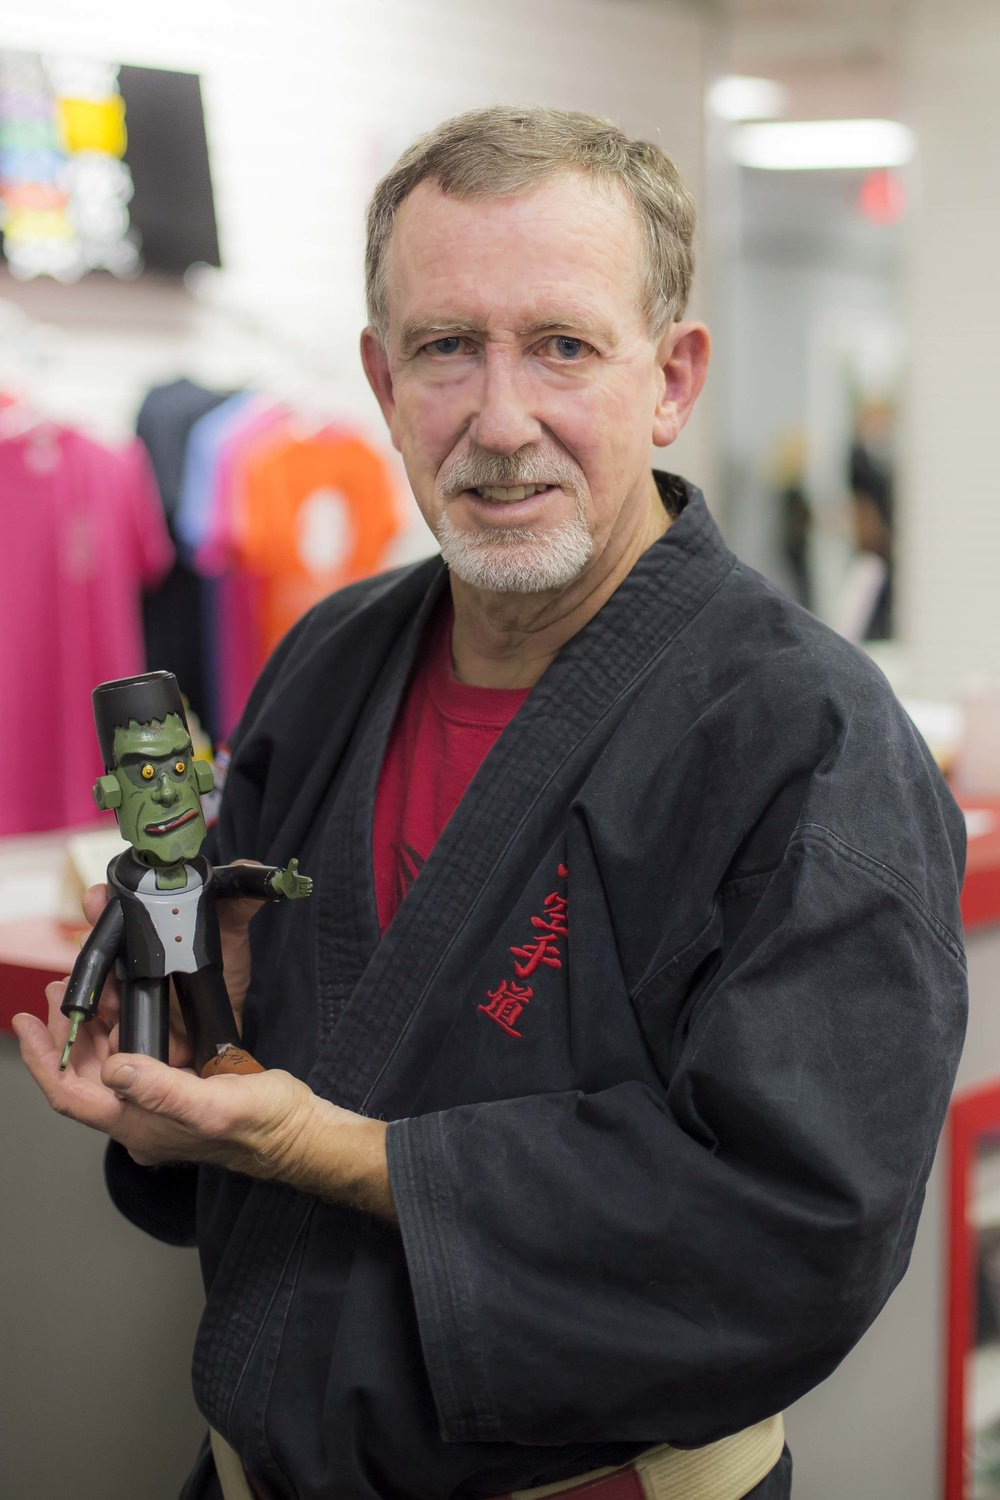 Kyoshi Cunningham showing off a metal figure of Frankenstein that he created and shaped.